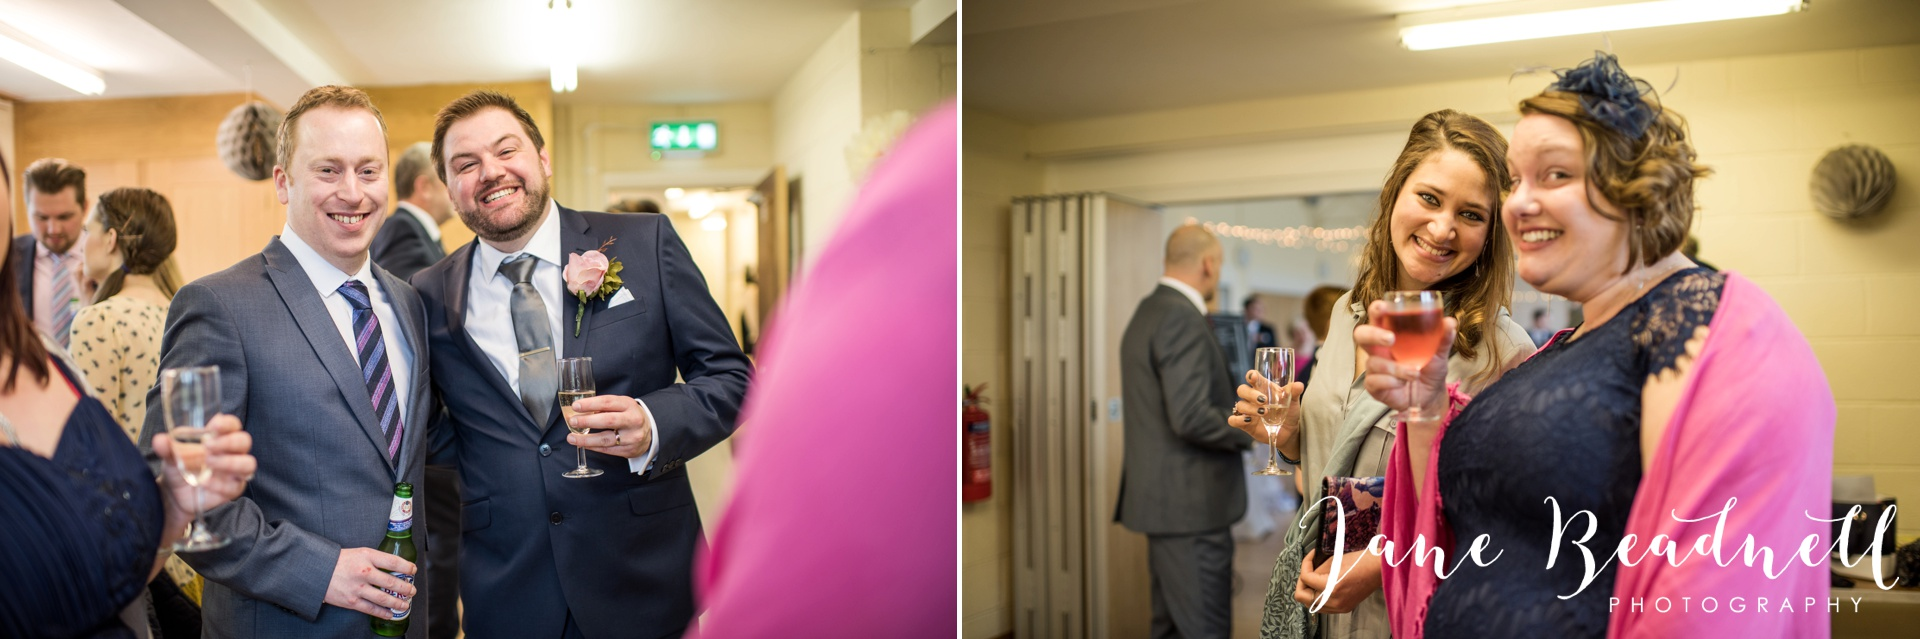 Cracoe Village Hall Wedding Photography by Jane Beadnell Photography fine art wedding photographer Yorkshire_0060